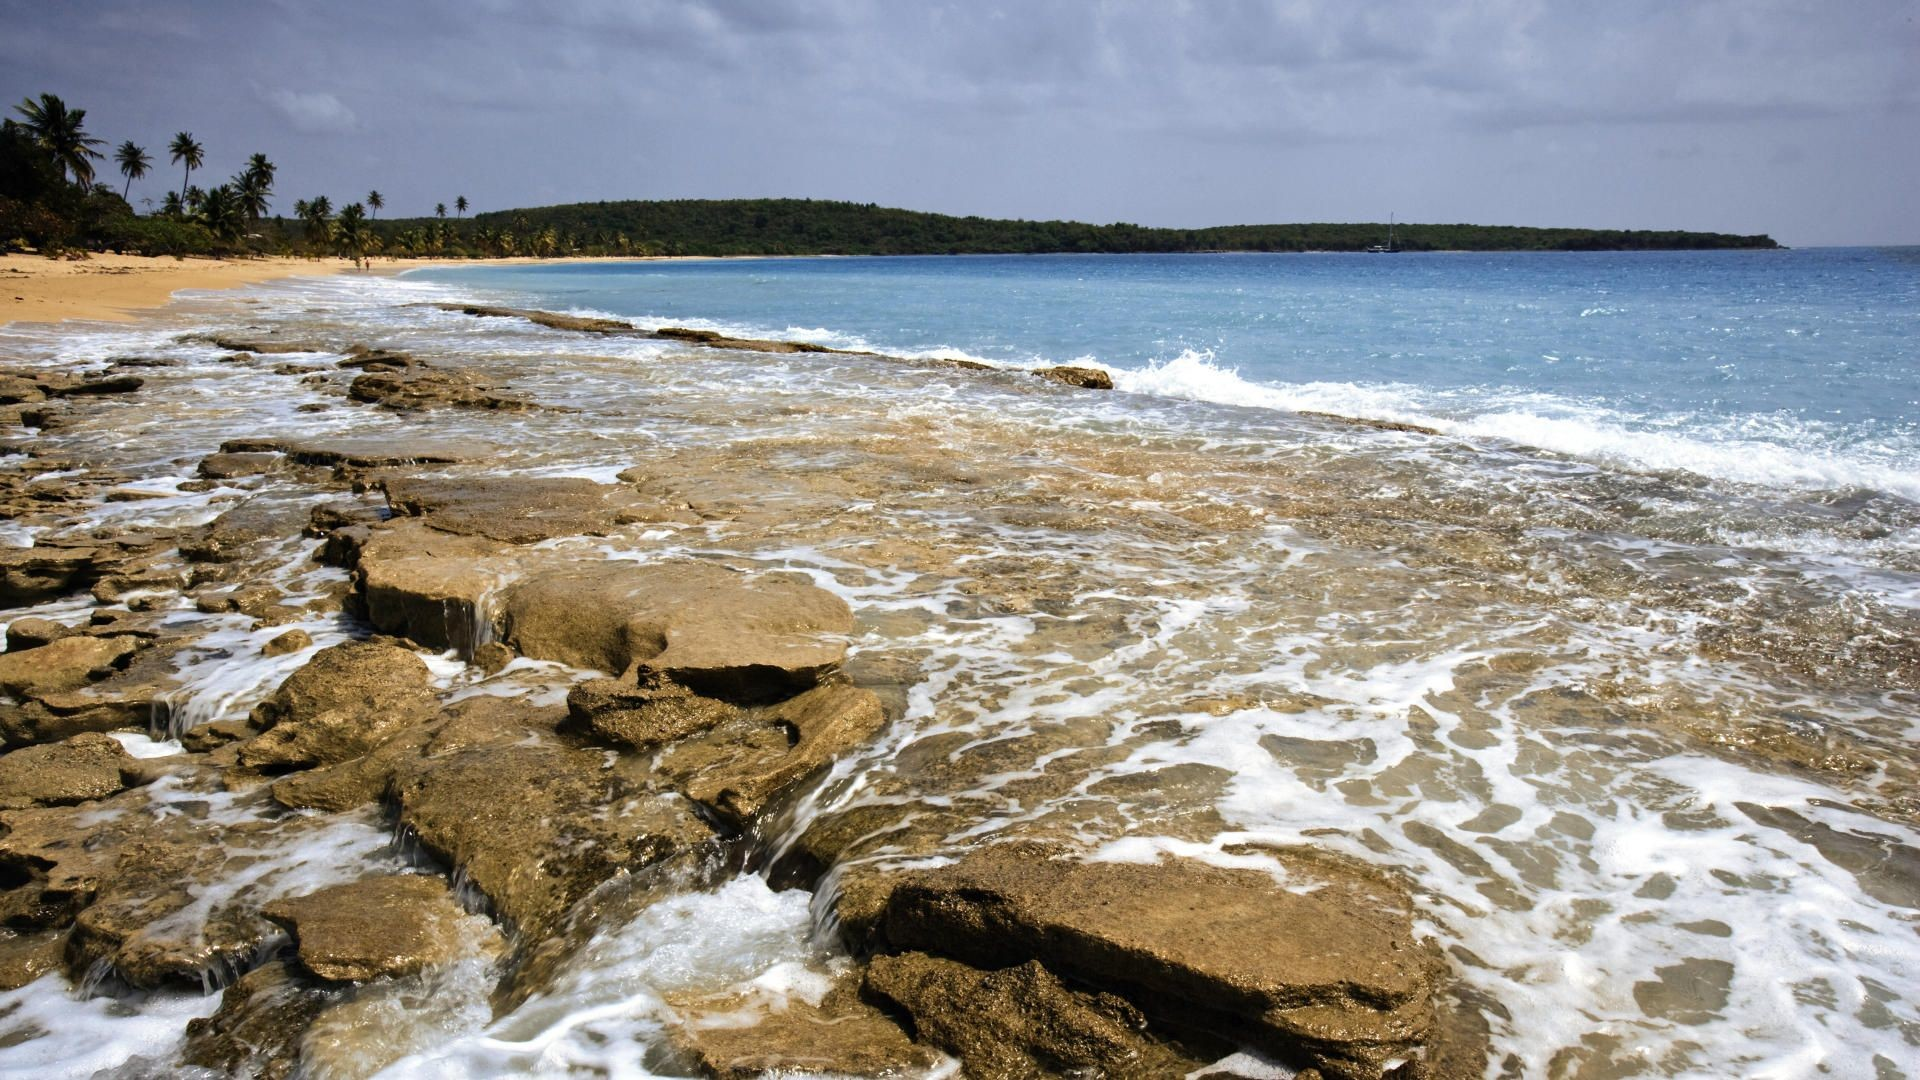 puerto, screensaver, wallpapers, background, vieques, sea, nature .